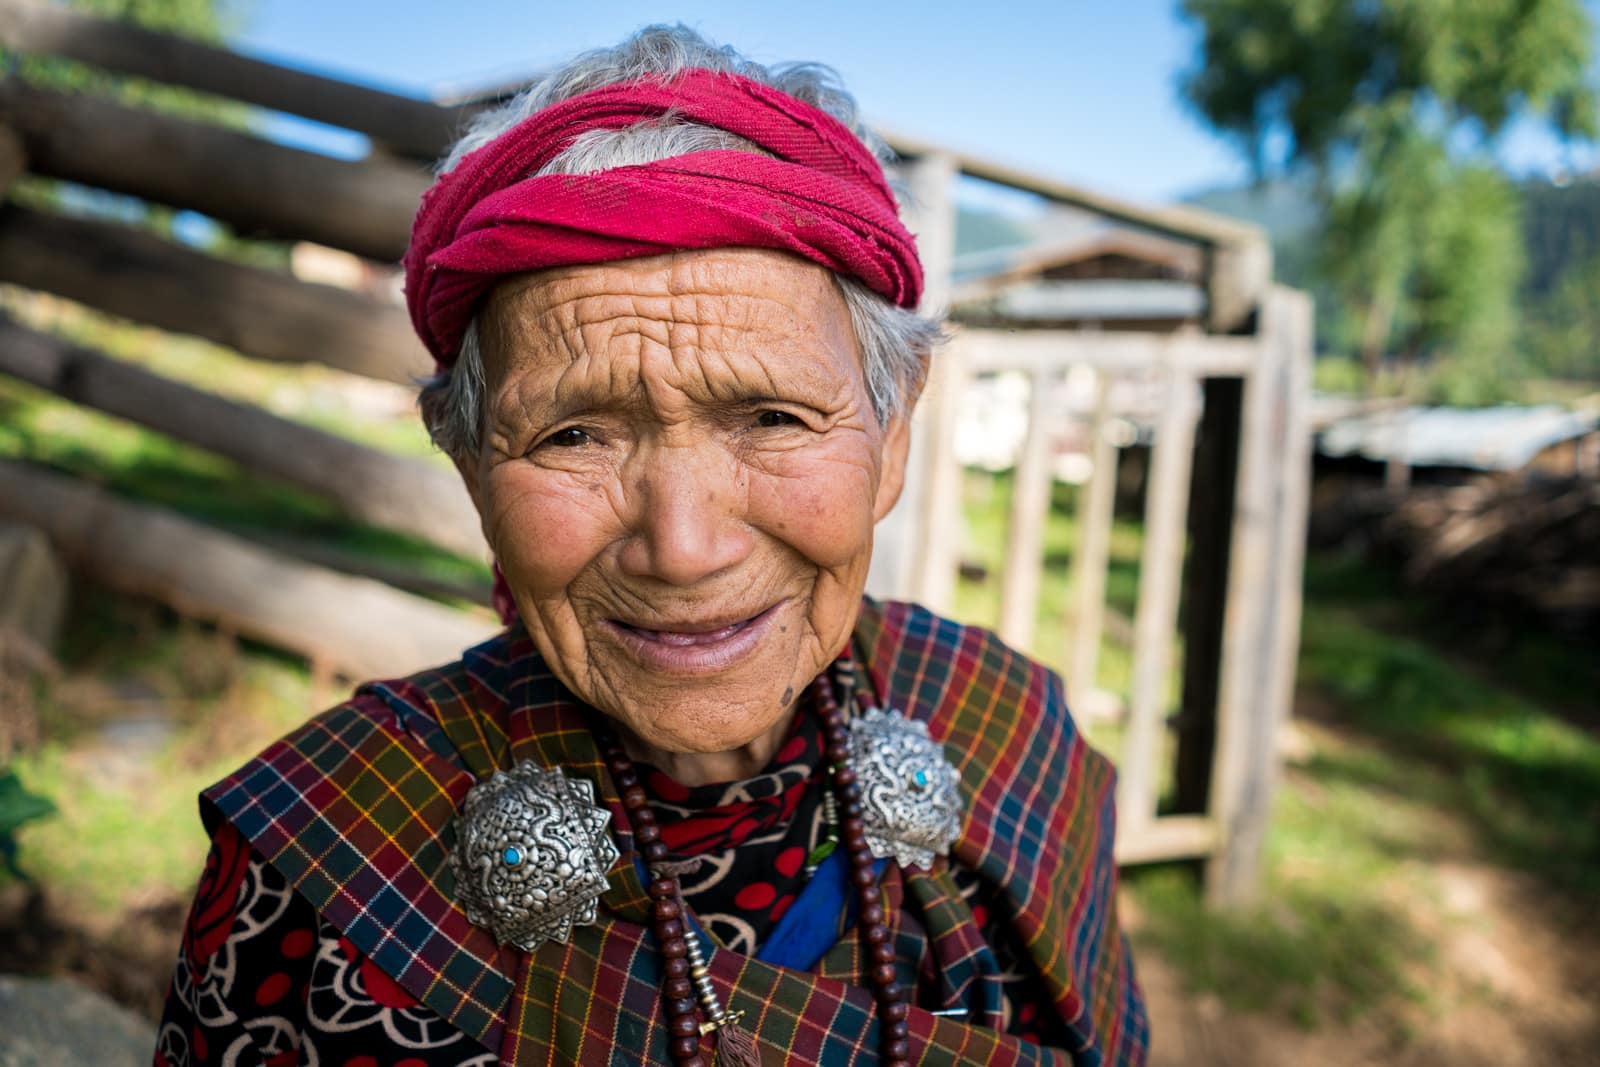 Photos of Bhutan - Grandmother in Phobjikha Valley, Bhutan - Lost With Purpose travel blog